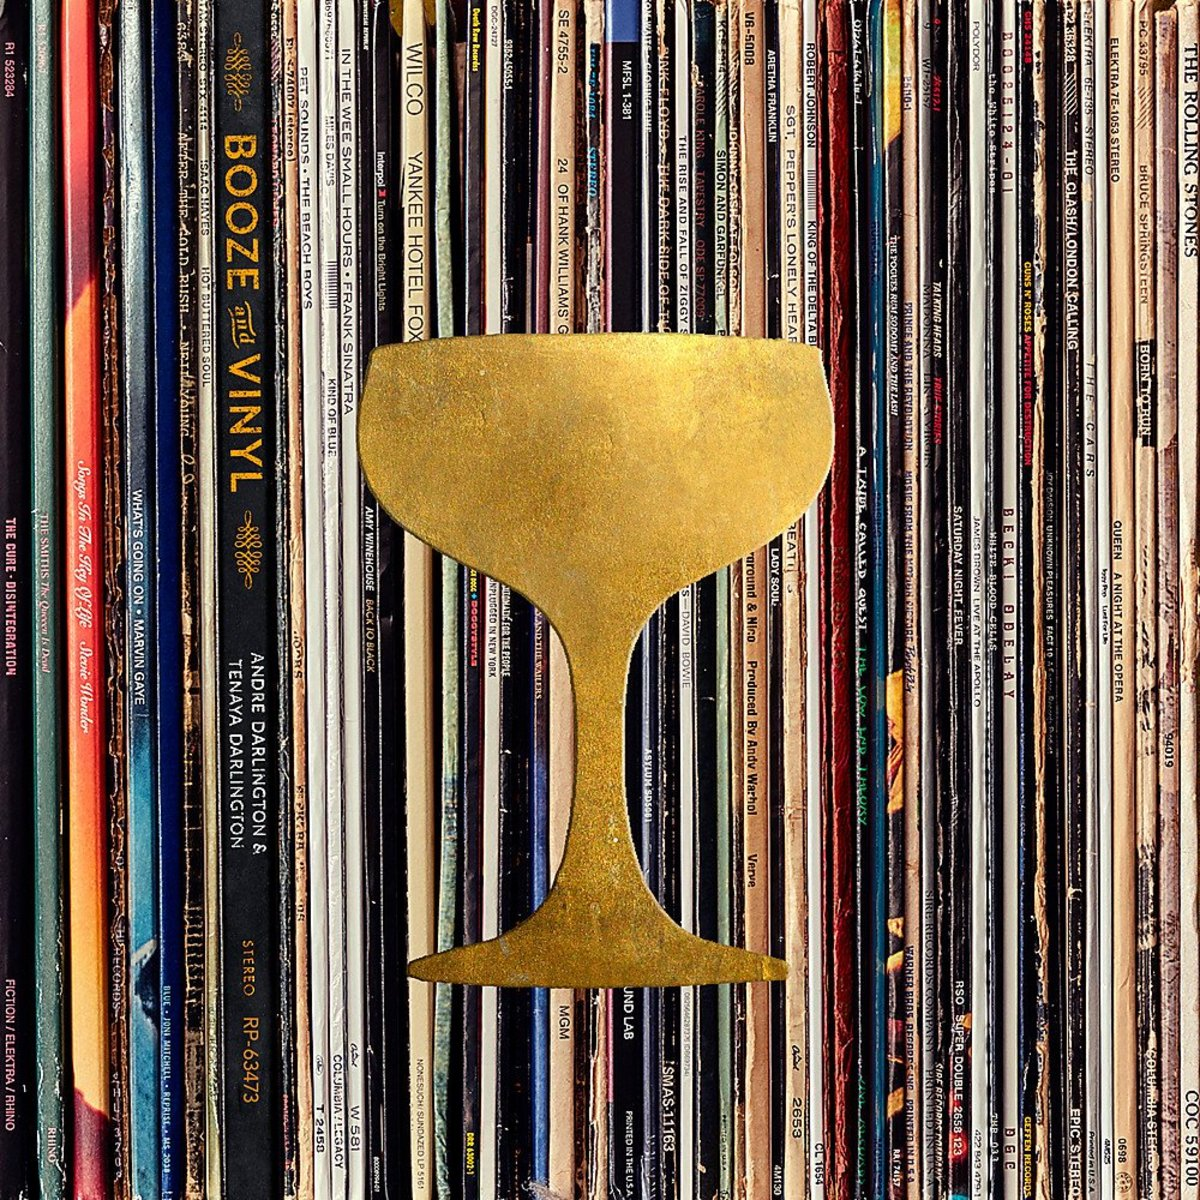 Booze and Vinyl: A Spirited Guide to Great Music and Mixed Drinks by Andre Darlington and Tenaya Darlington